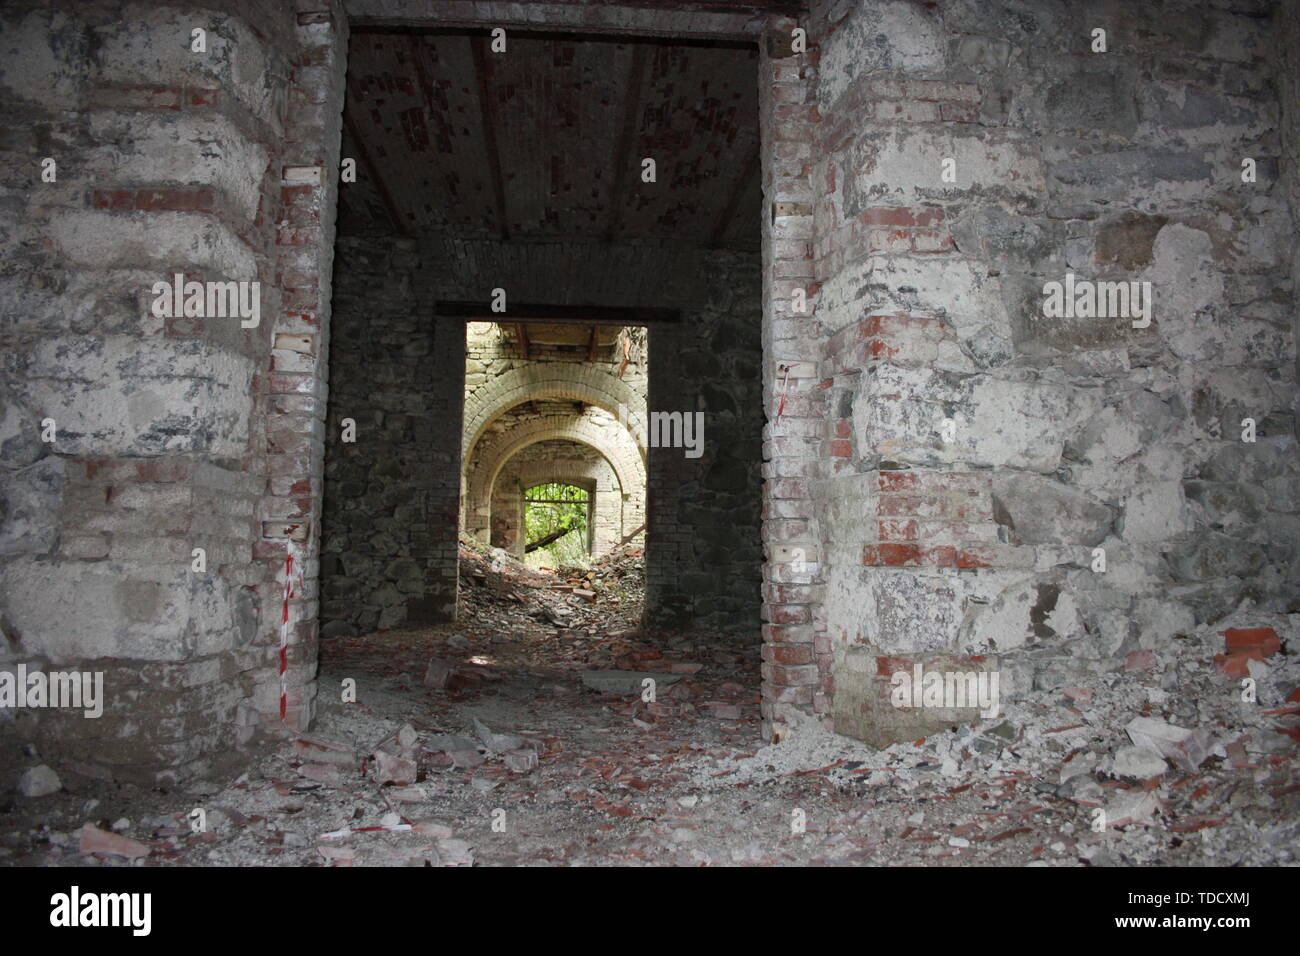 Fort Bastione, a nineteenth-century military fortress, abandoned to the neglect of nature. distressing stone construction inside and out. wild nature  - Stock Image